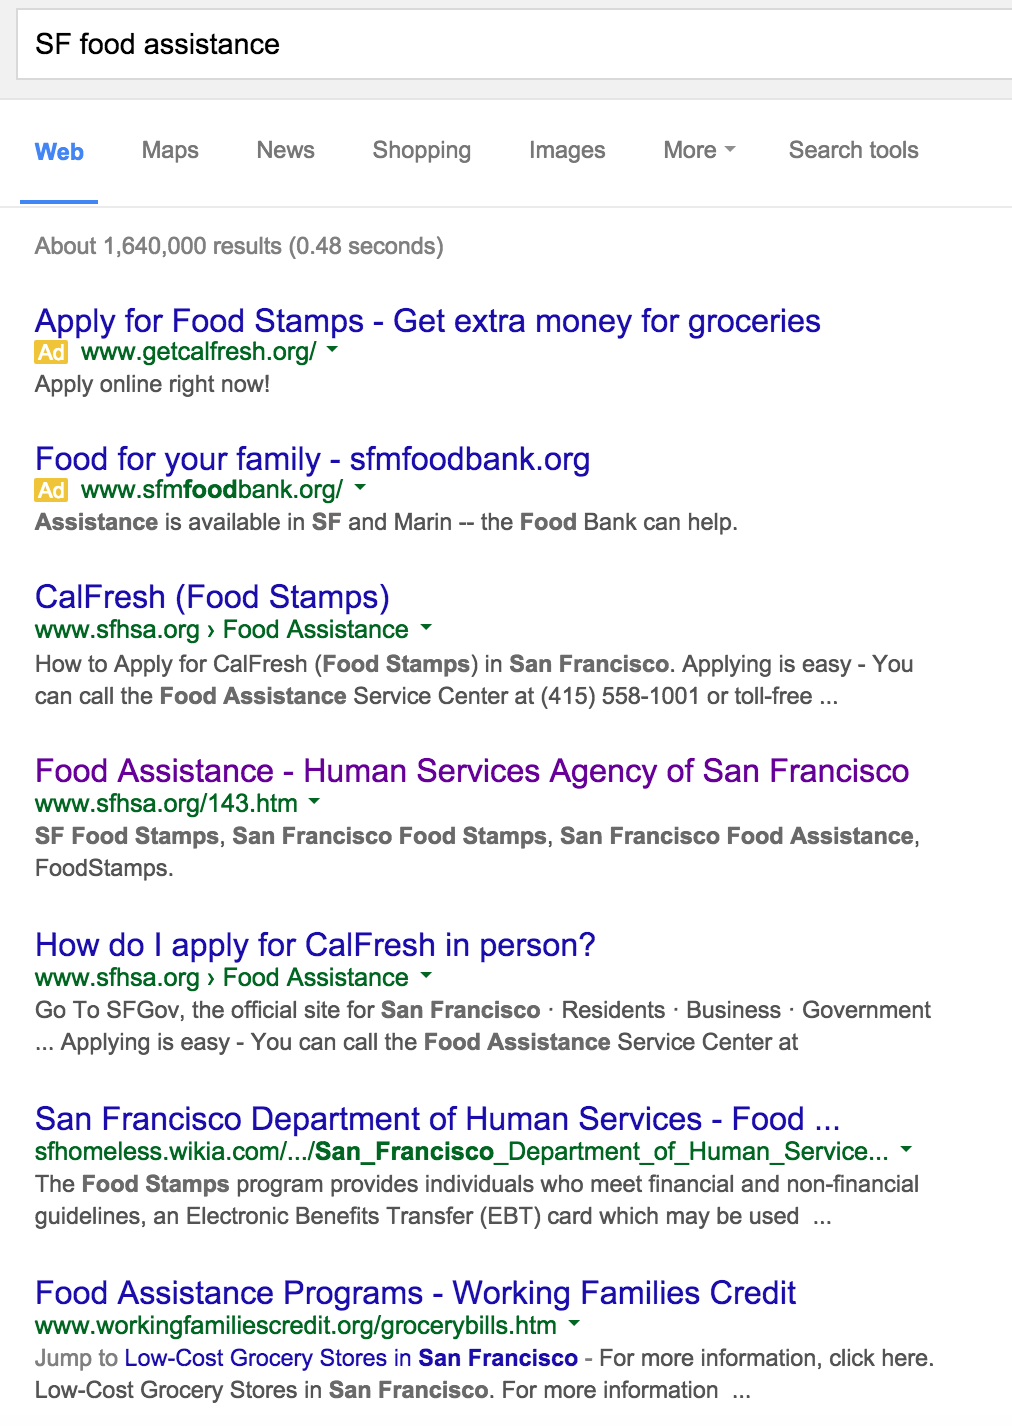 Search Results From Google